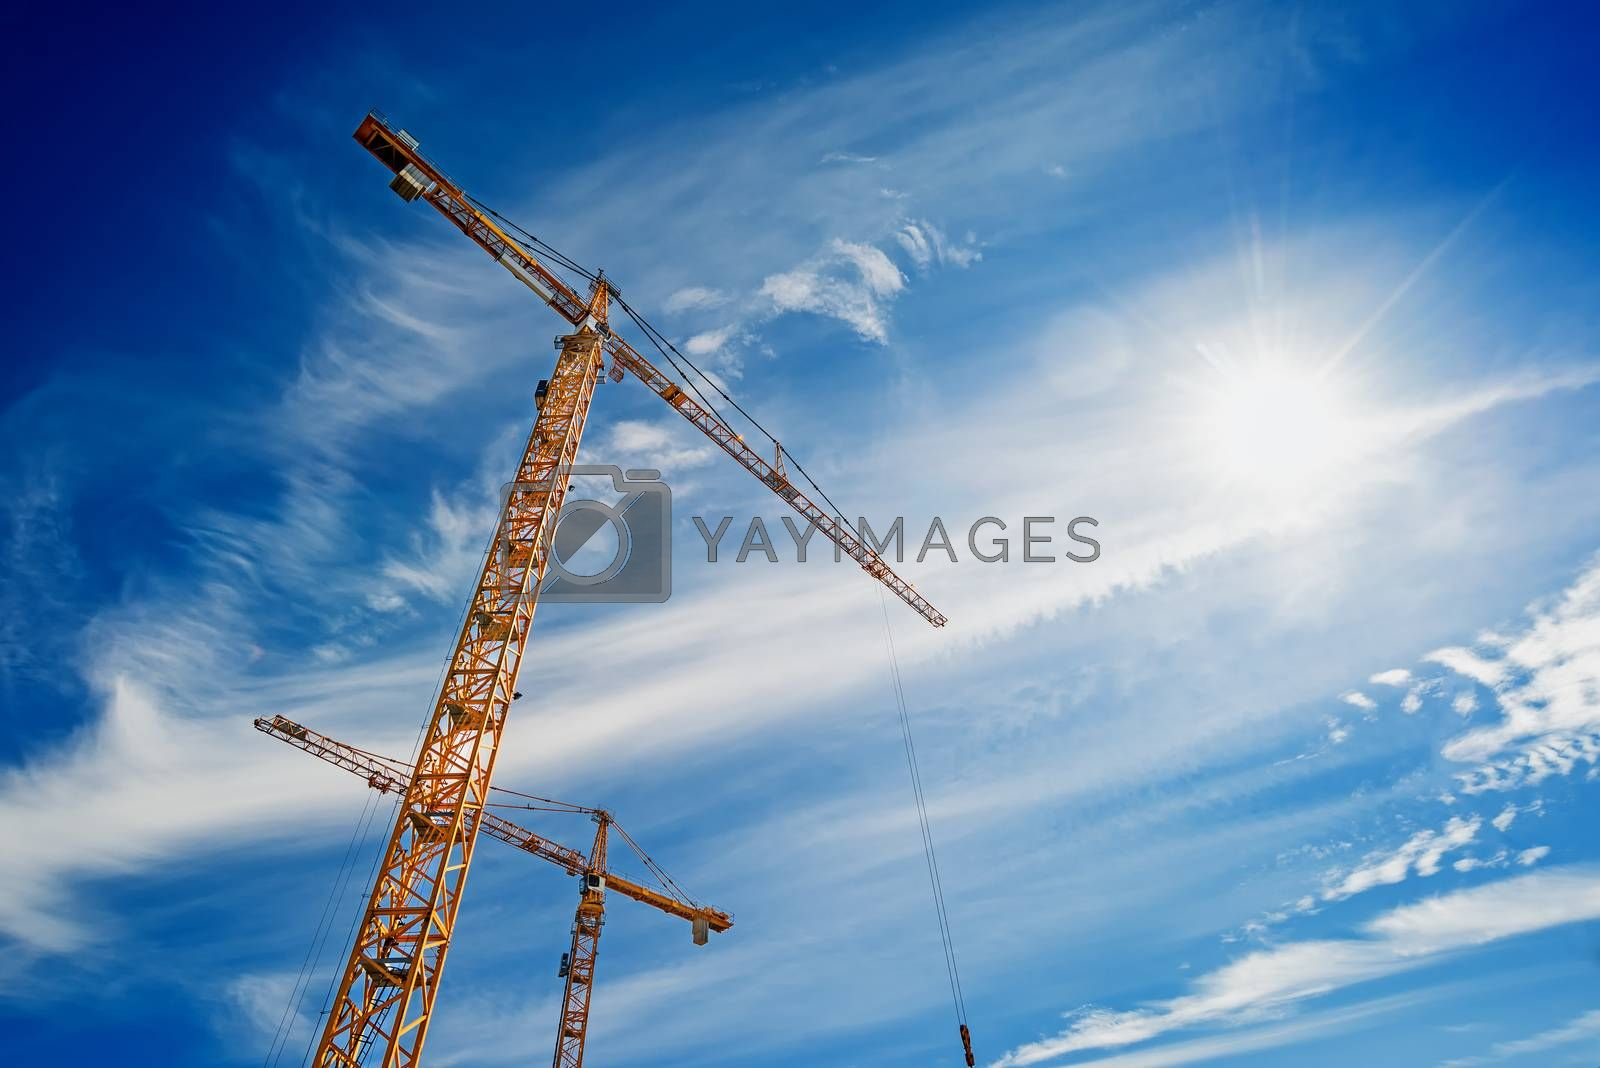 Two Yellow Industrial Cranes Working on Construction Site Against Blue Sky